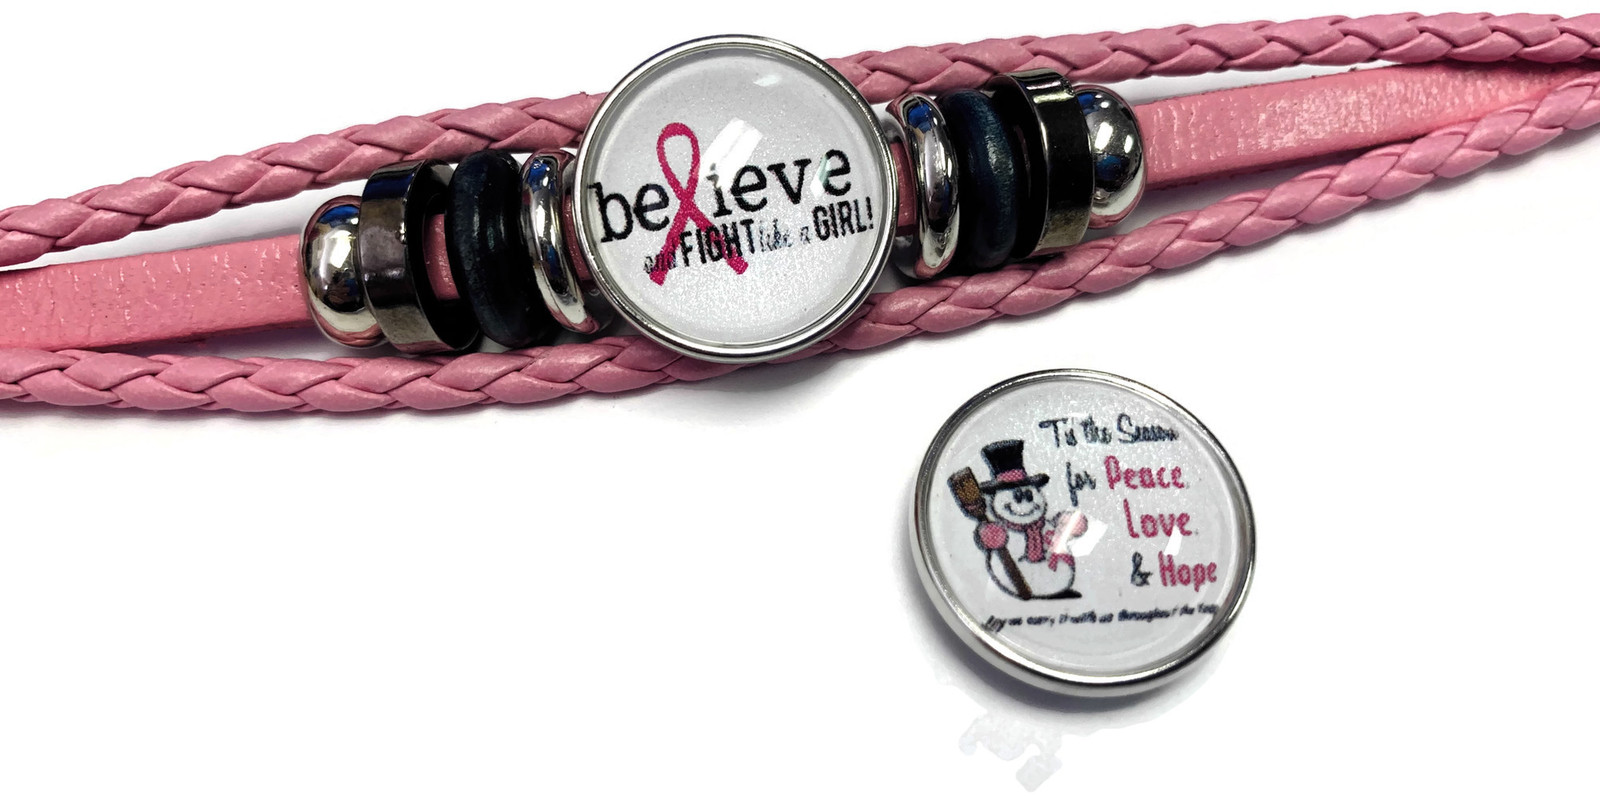 Tis The Season Breast Cancer Snaps Pink Leather Bracelet W/2 Snap Jewelry Charms image 4